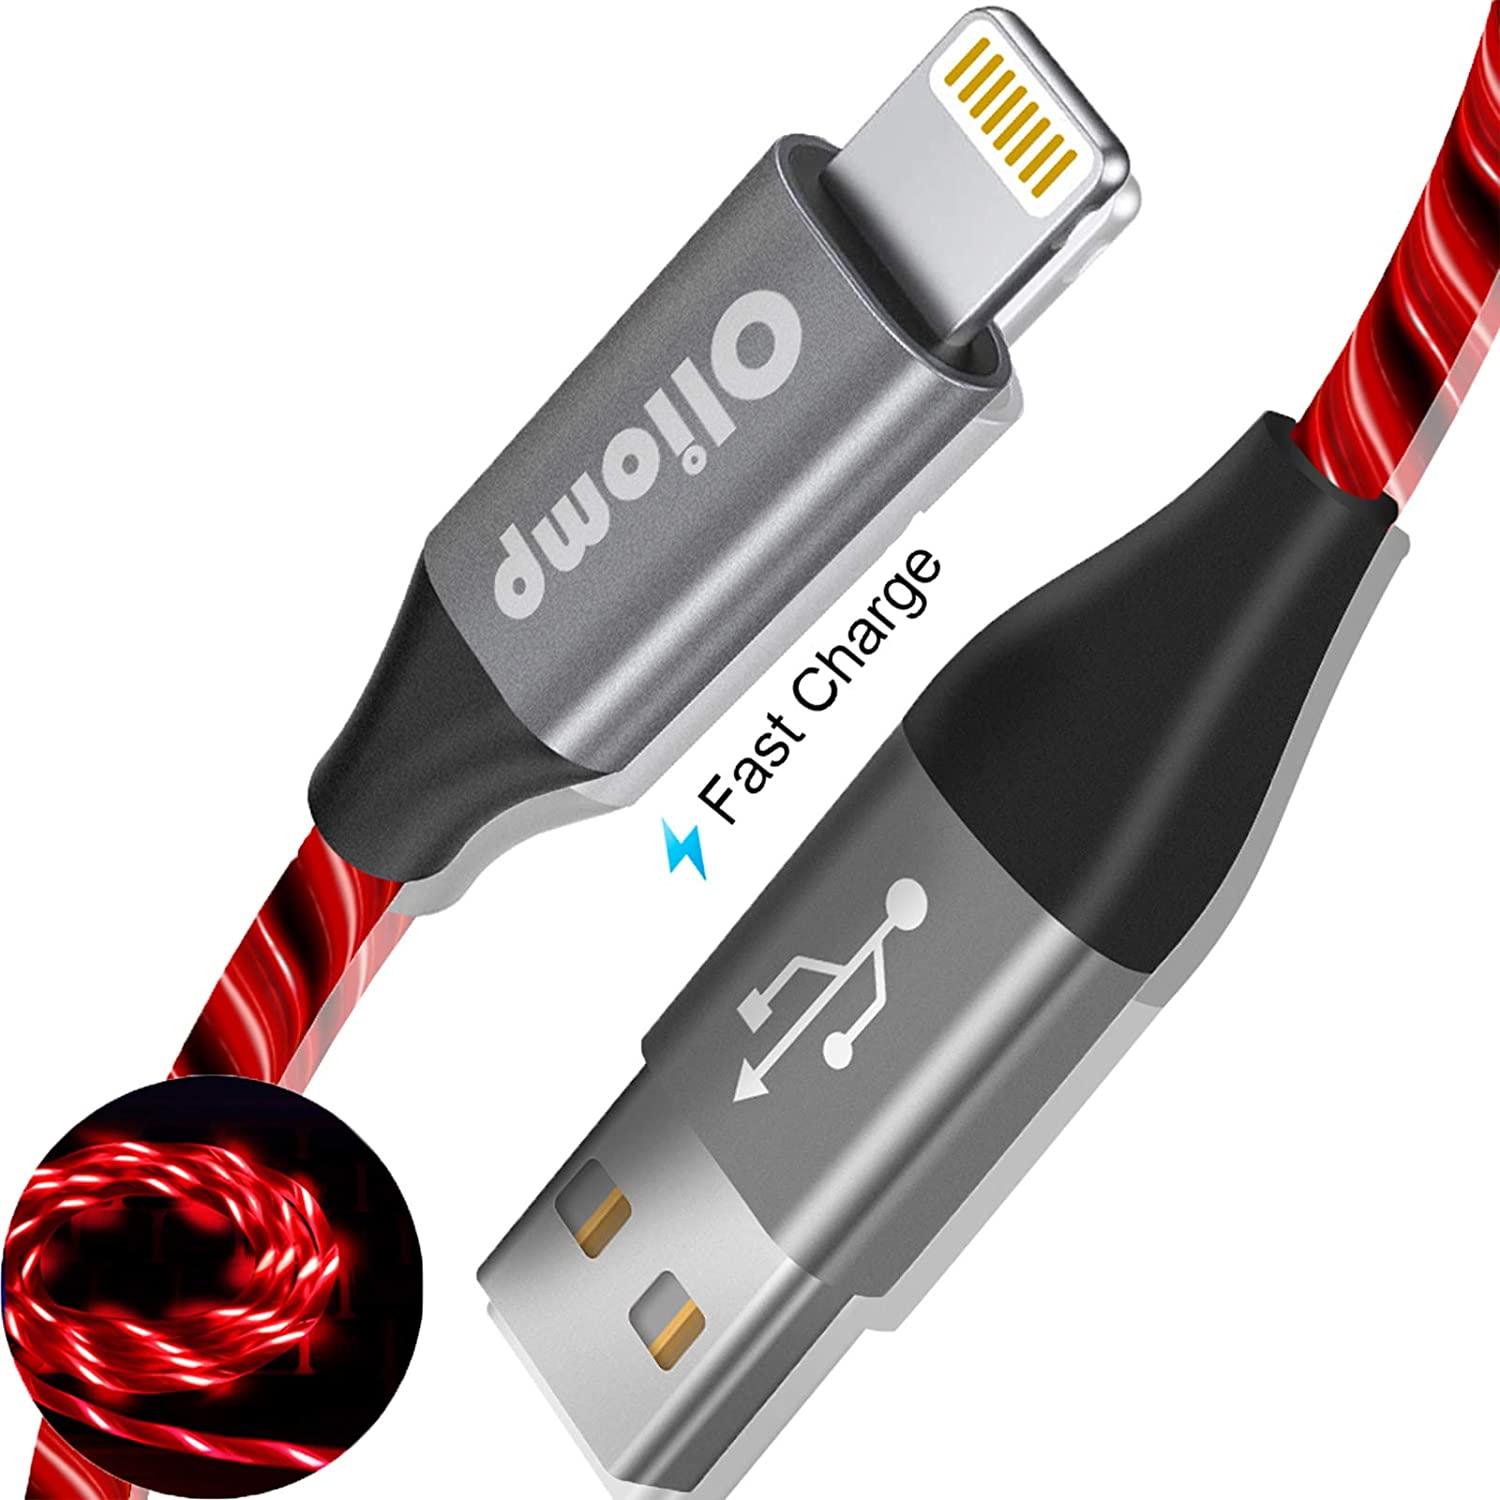 iPhone Charger Cable, Oliomp (Apple MFi Certified) 6ft LED Light Up Visible Flowing Lightning Cable iPhone Charging Cord for Apple iPhone 11 Pro Max XS XR X 8 7 6S 6 Plus SE 5S 5C 5 iPad (Red)